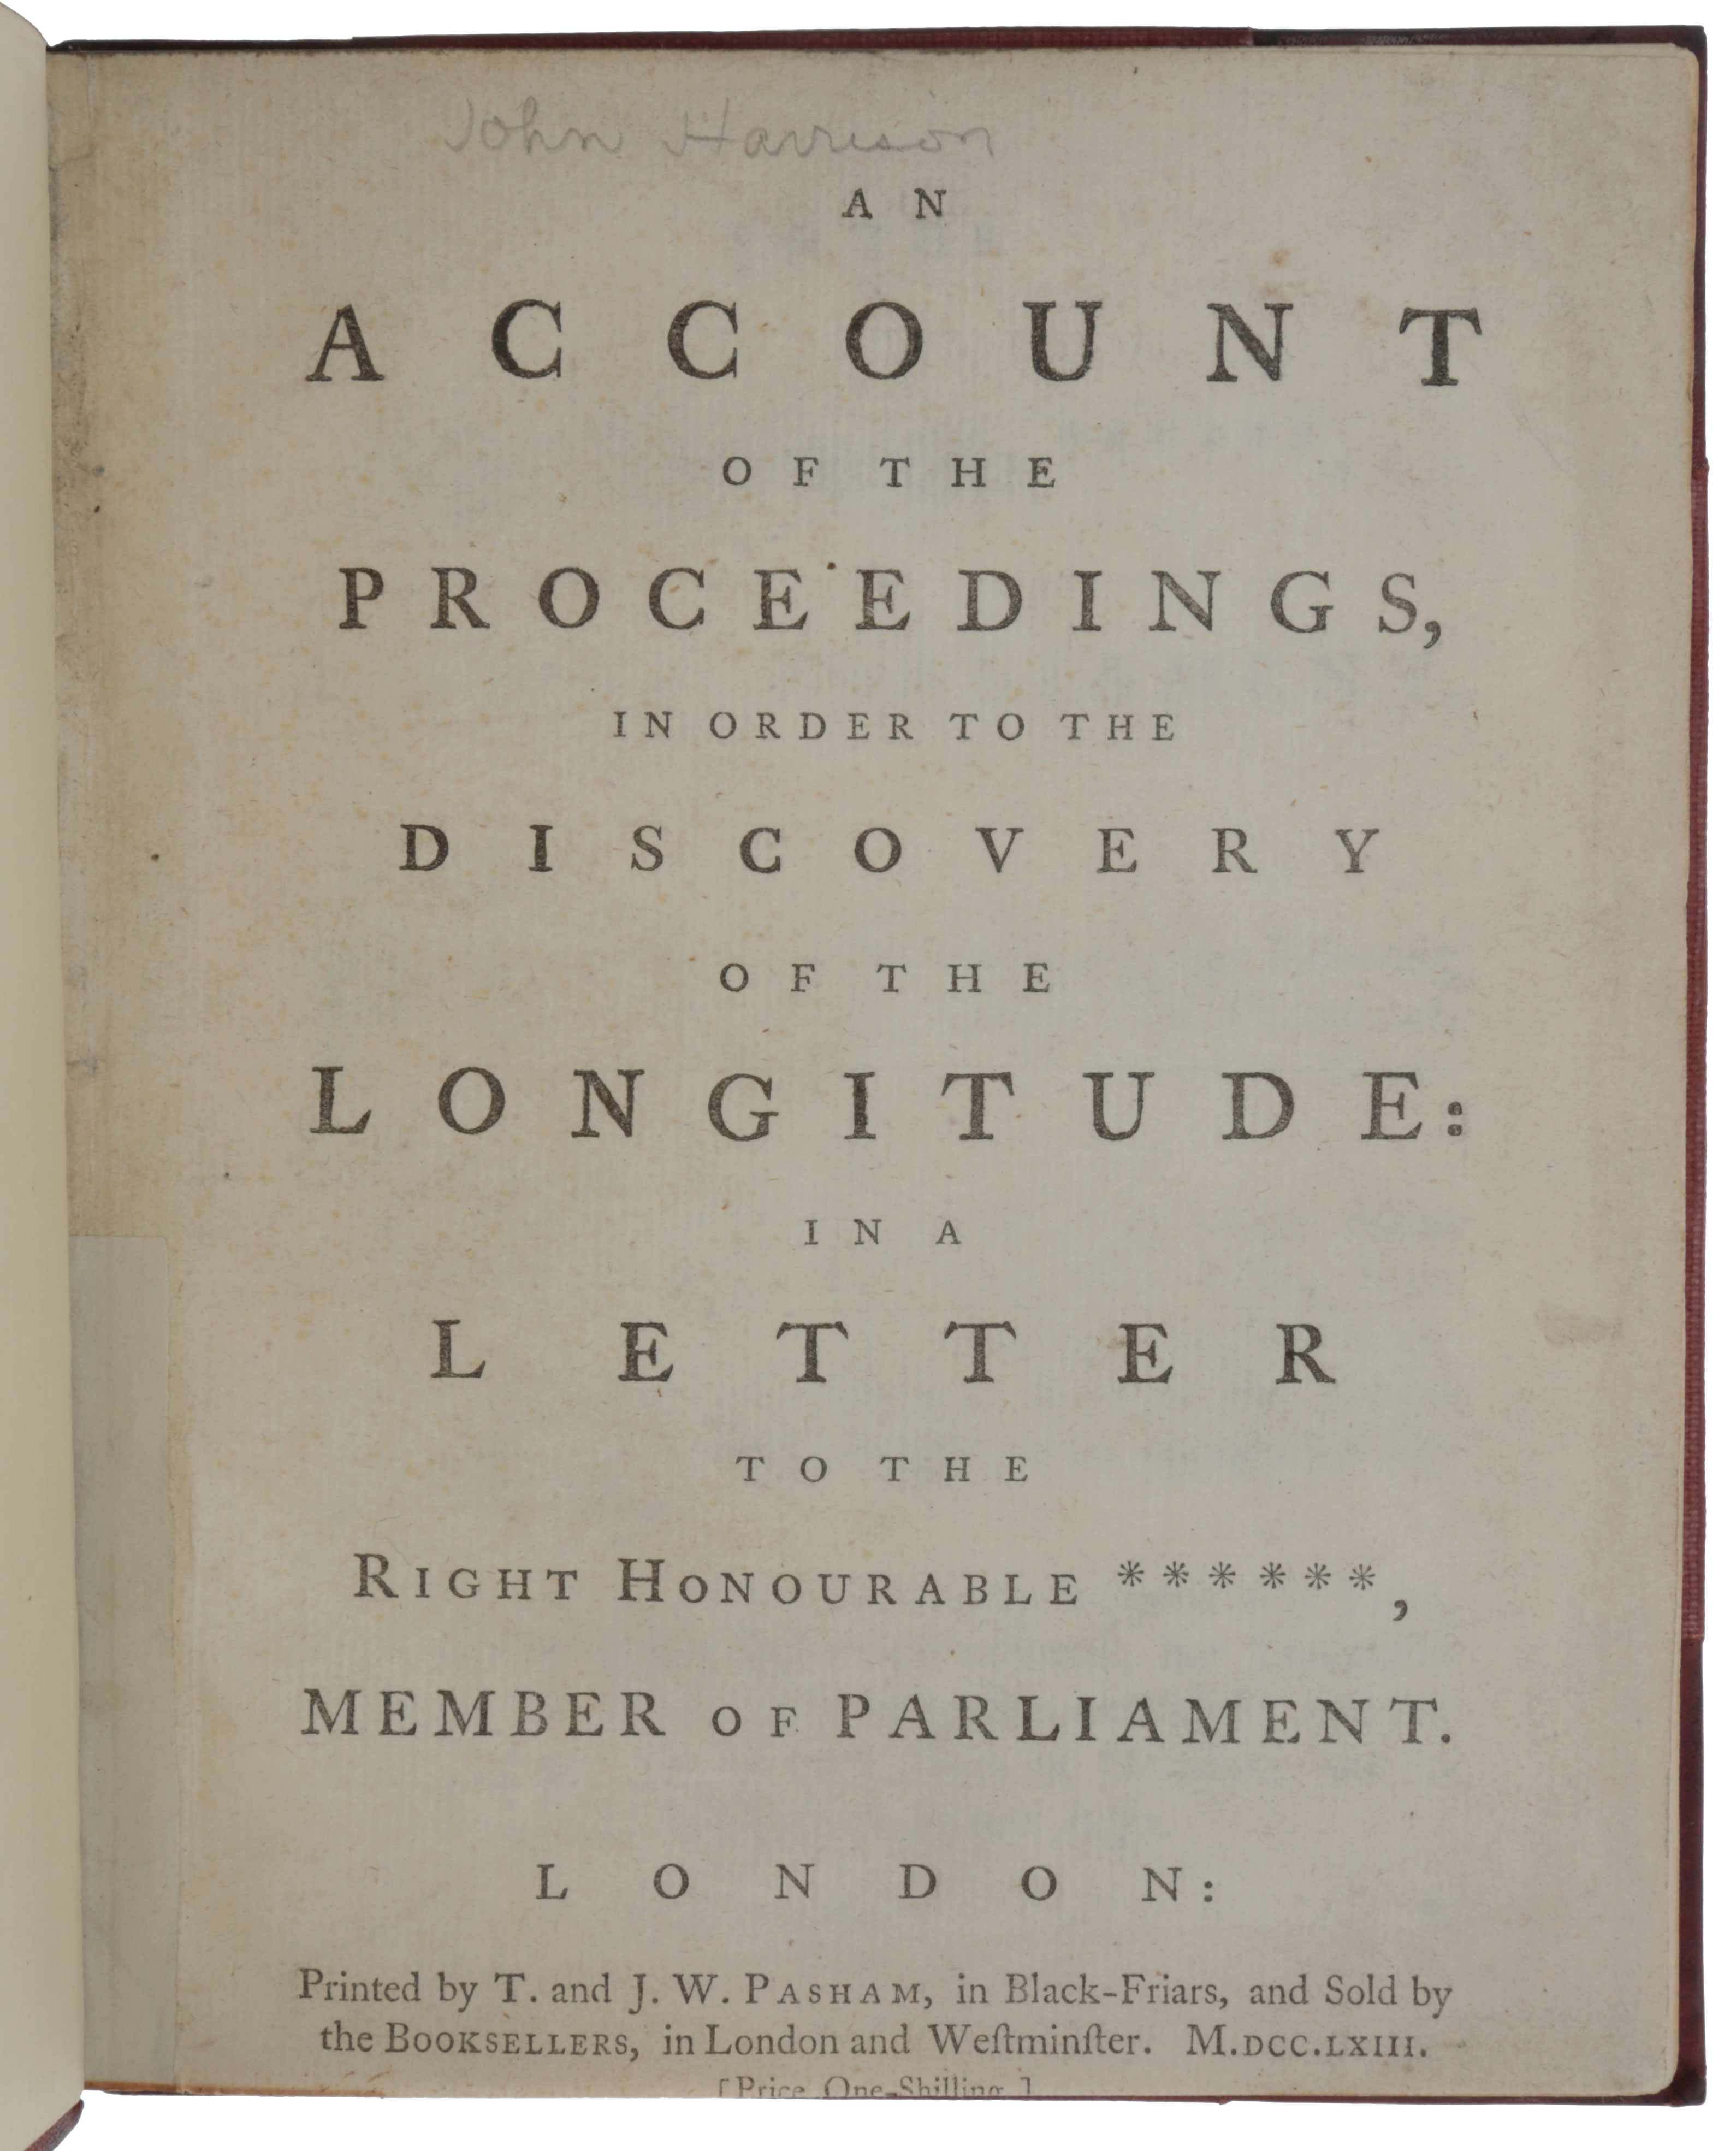 An Account of the Proceedings, in Order to the Discovery of the Longitude: In a Letter to the Right Honourable ******, Member of Parliament. John HARRISON, James SHORT.